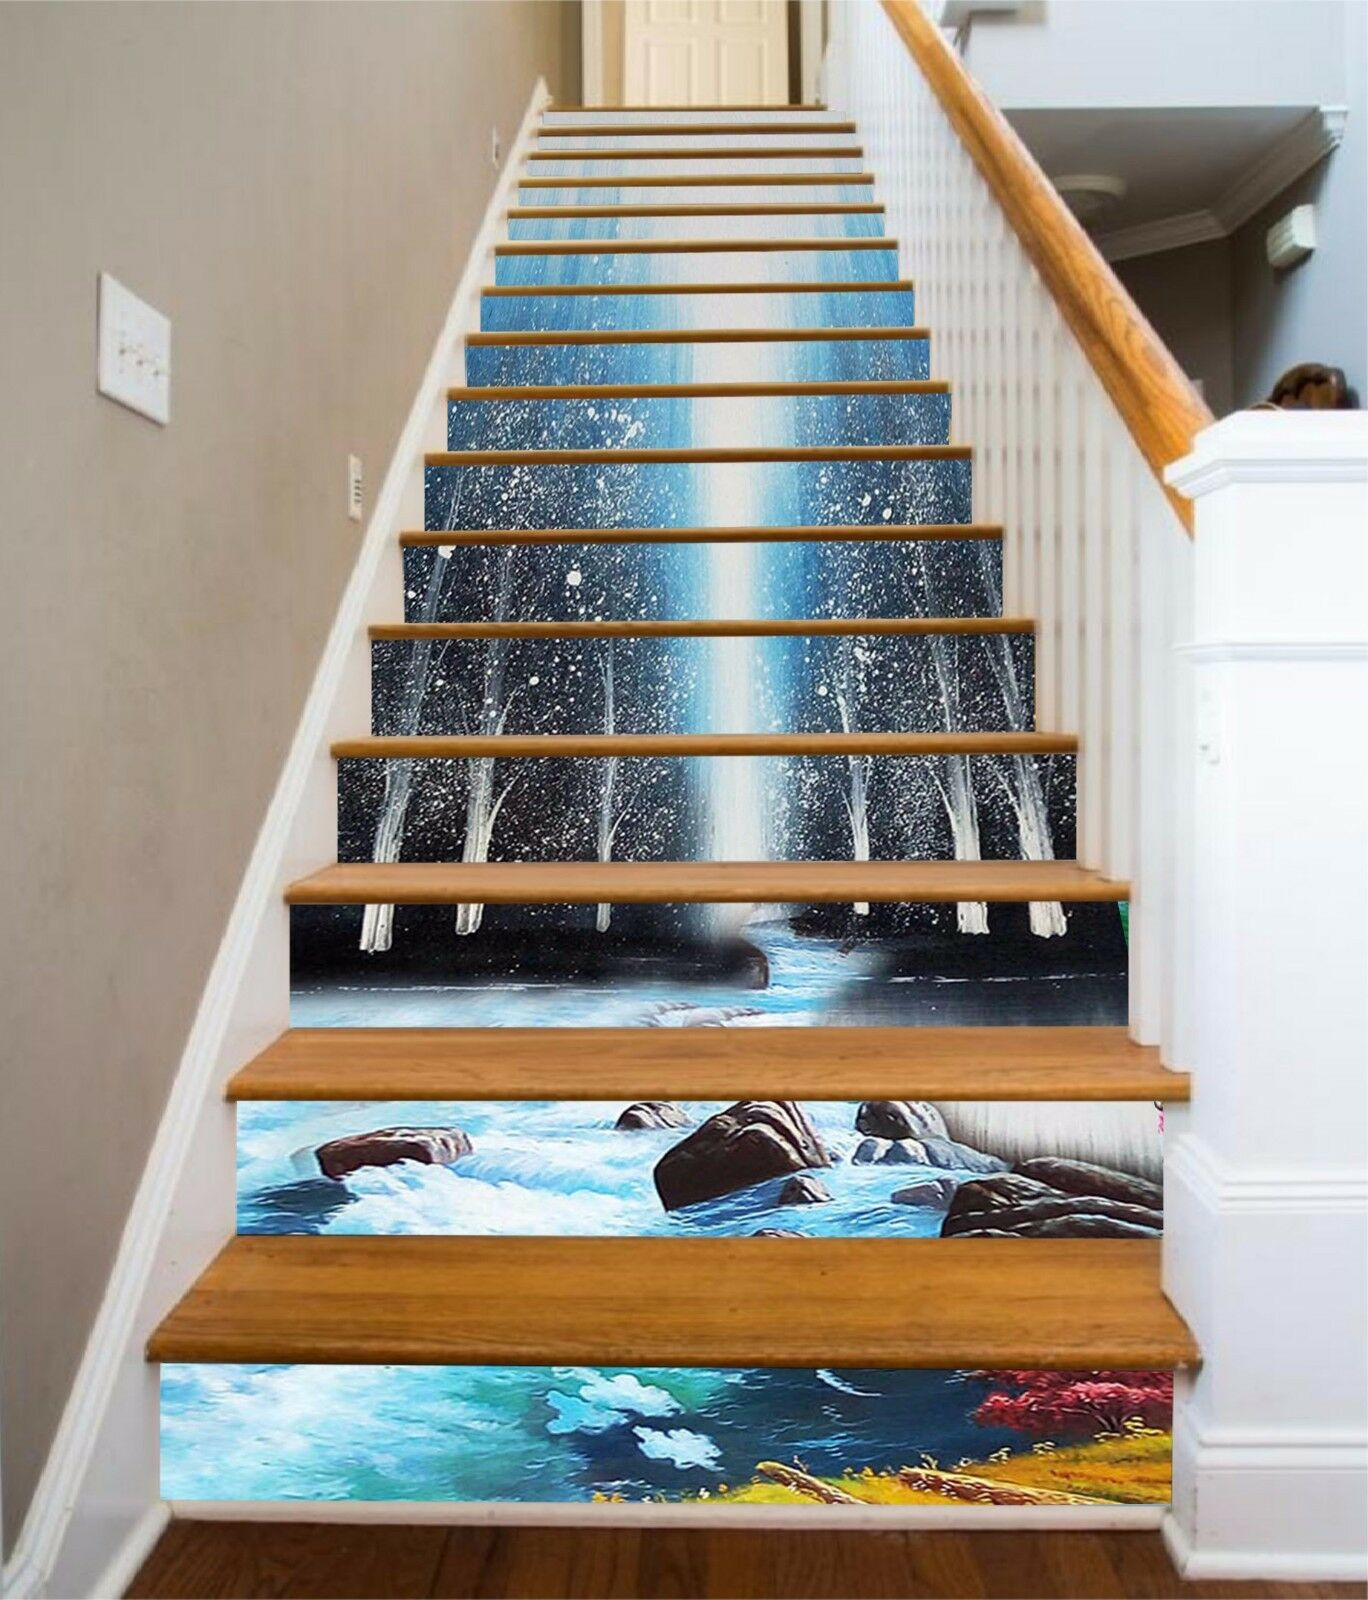 3D River Scenery 97 Stair Risers Decoration Photo Mural Vinyl Decal Wallpaper AU